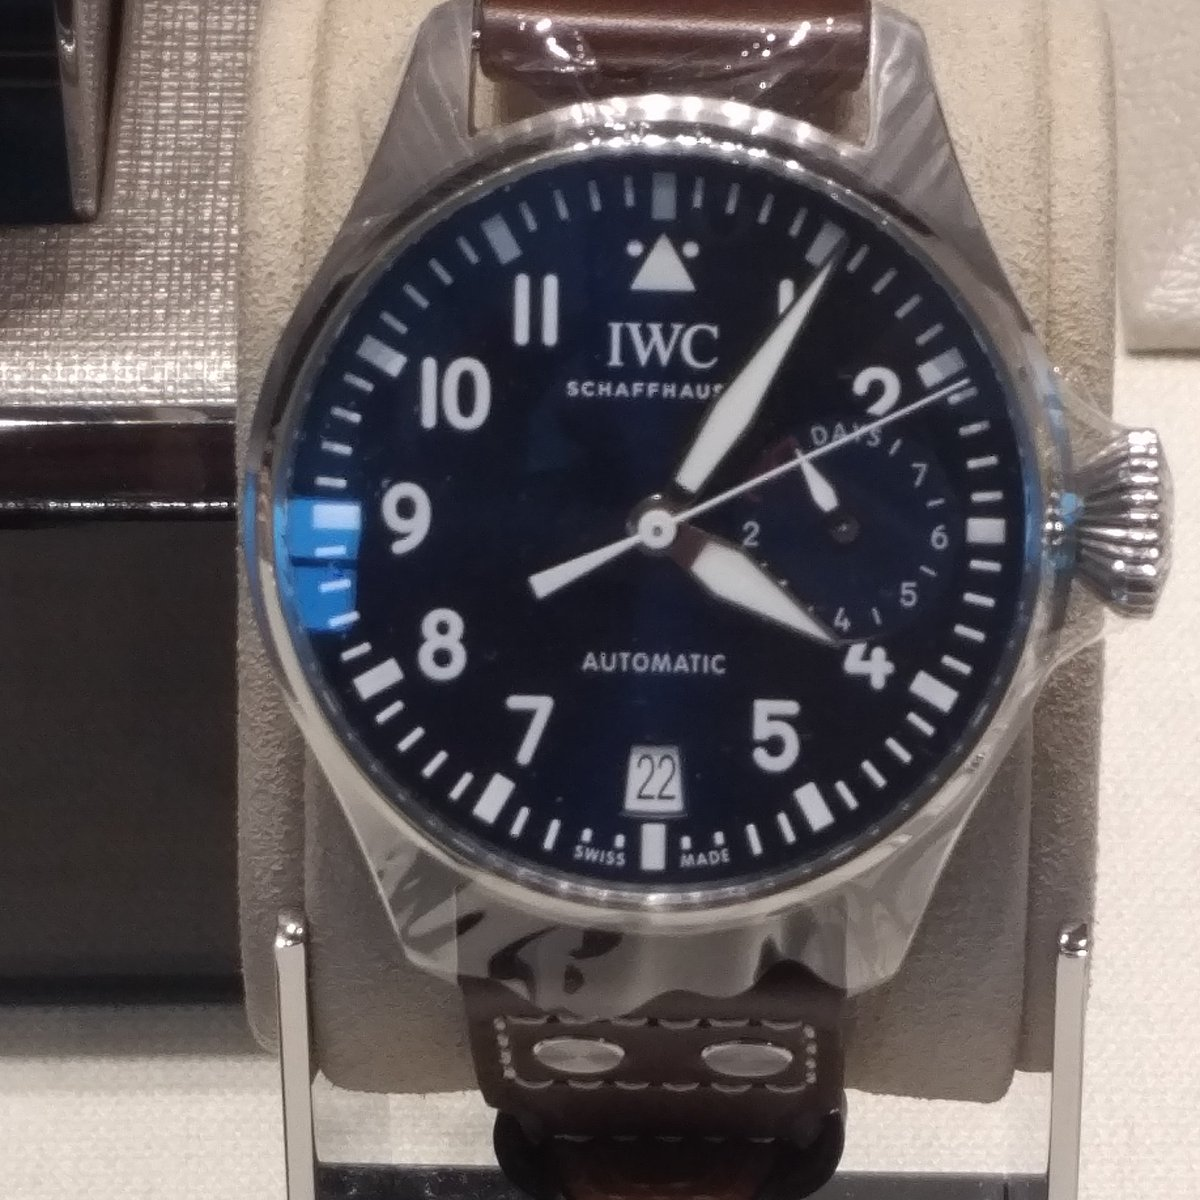 The IWC watch. Keeps time in your own world regardless of what timezon...